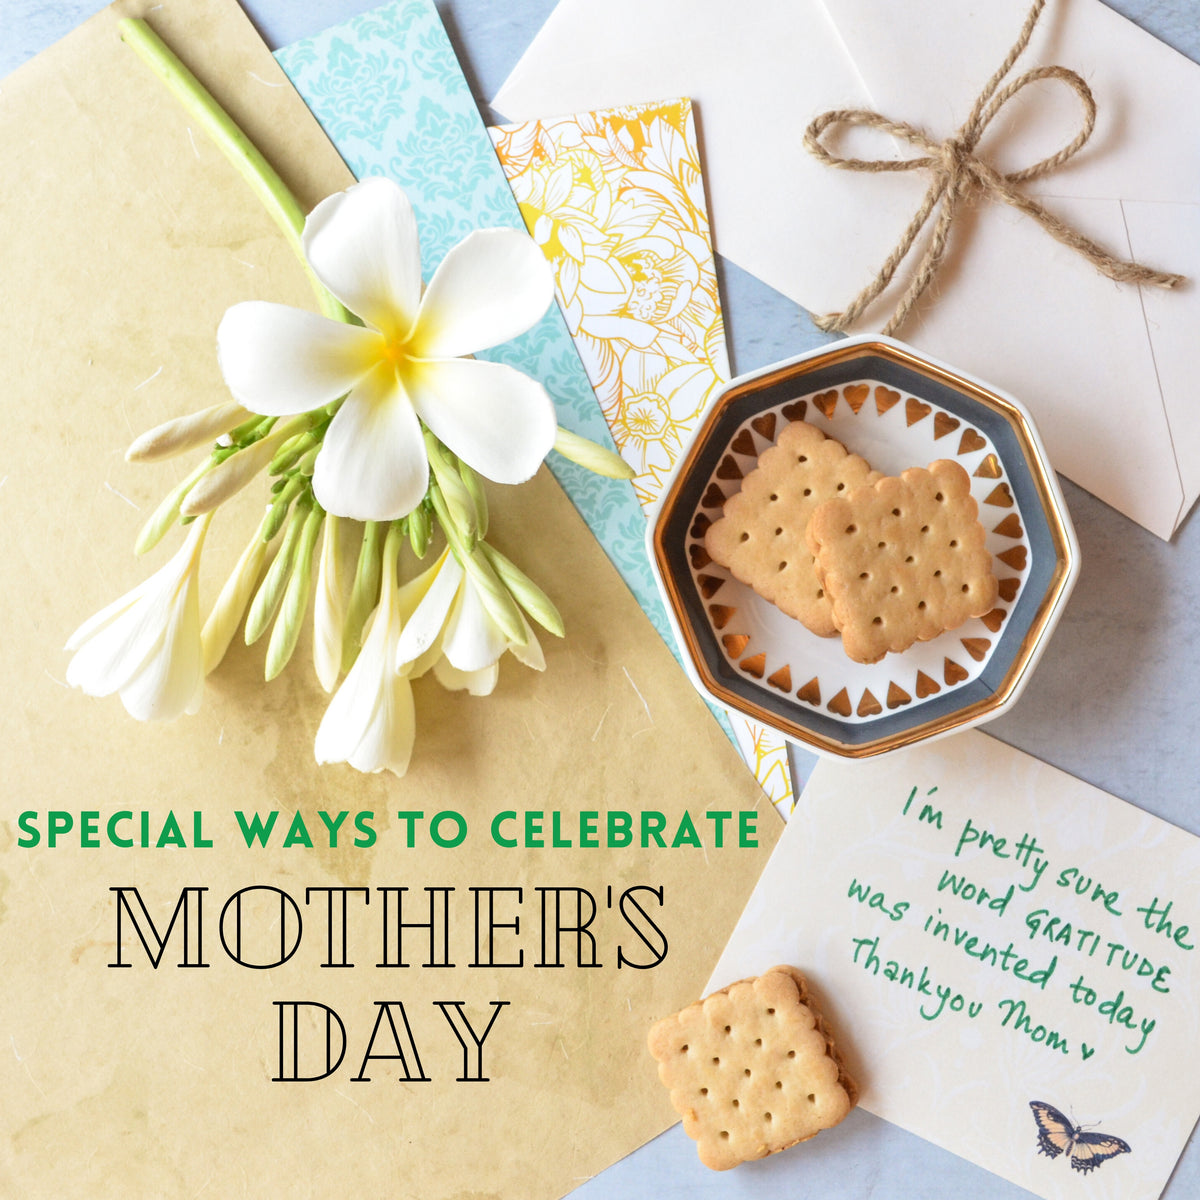 12 Fun Things to do on Mother's Day